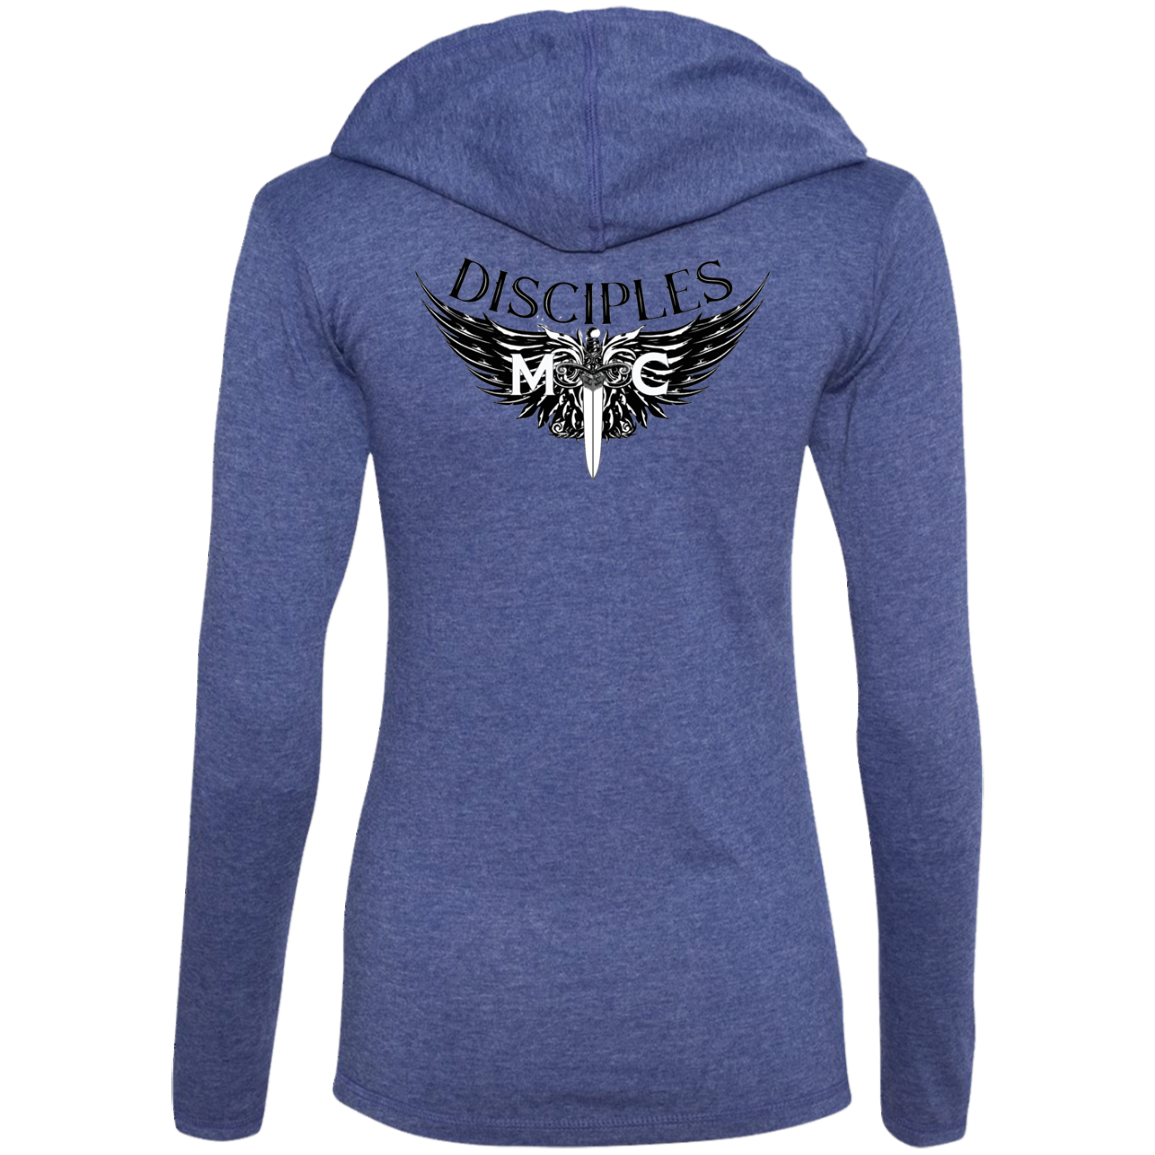 Disciples MC Black Anvil Ladies' LS T-Shirt Hoodie